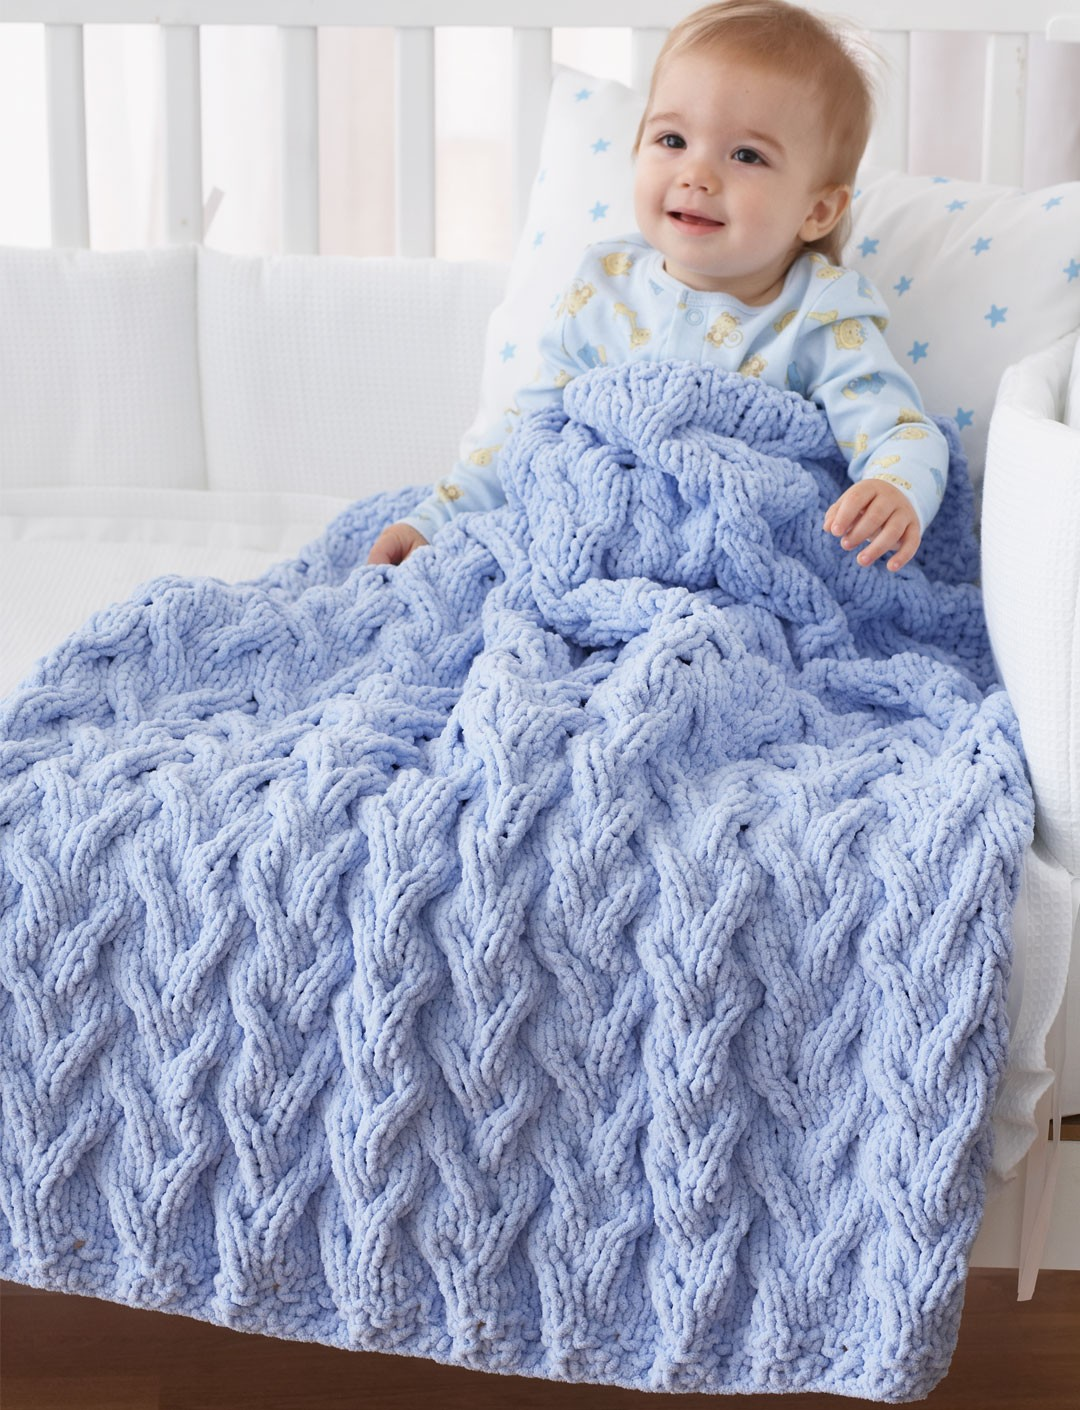 Knitting Patterns Using Baby Yarn : Bernat Blanket Yarn Patterns LONG HAIRSTYLES